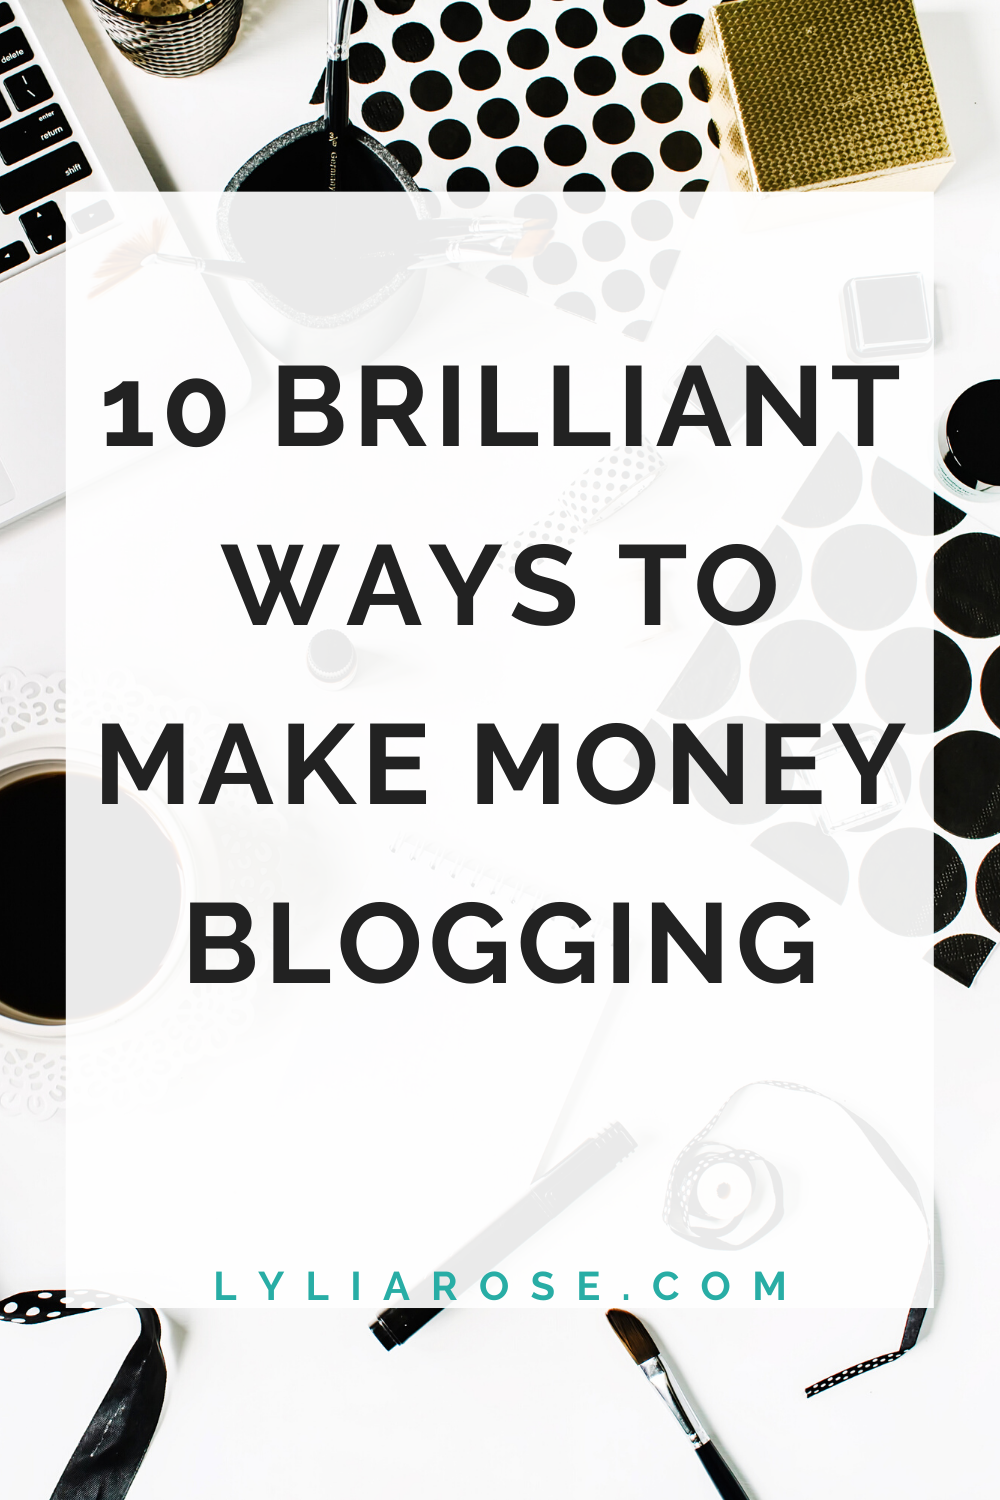 10 BRILLIANT ways to make money blogging